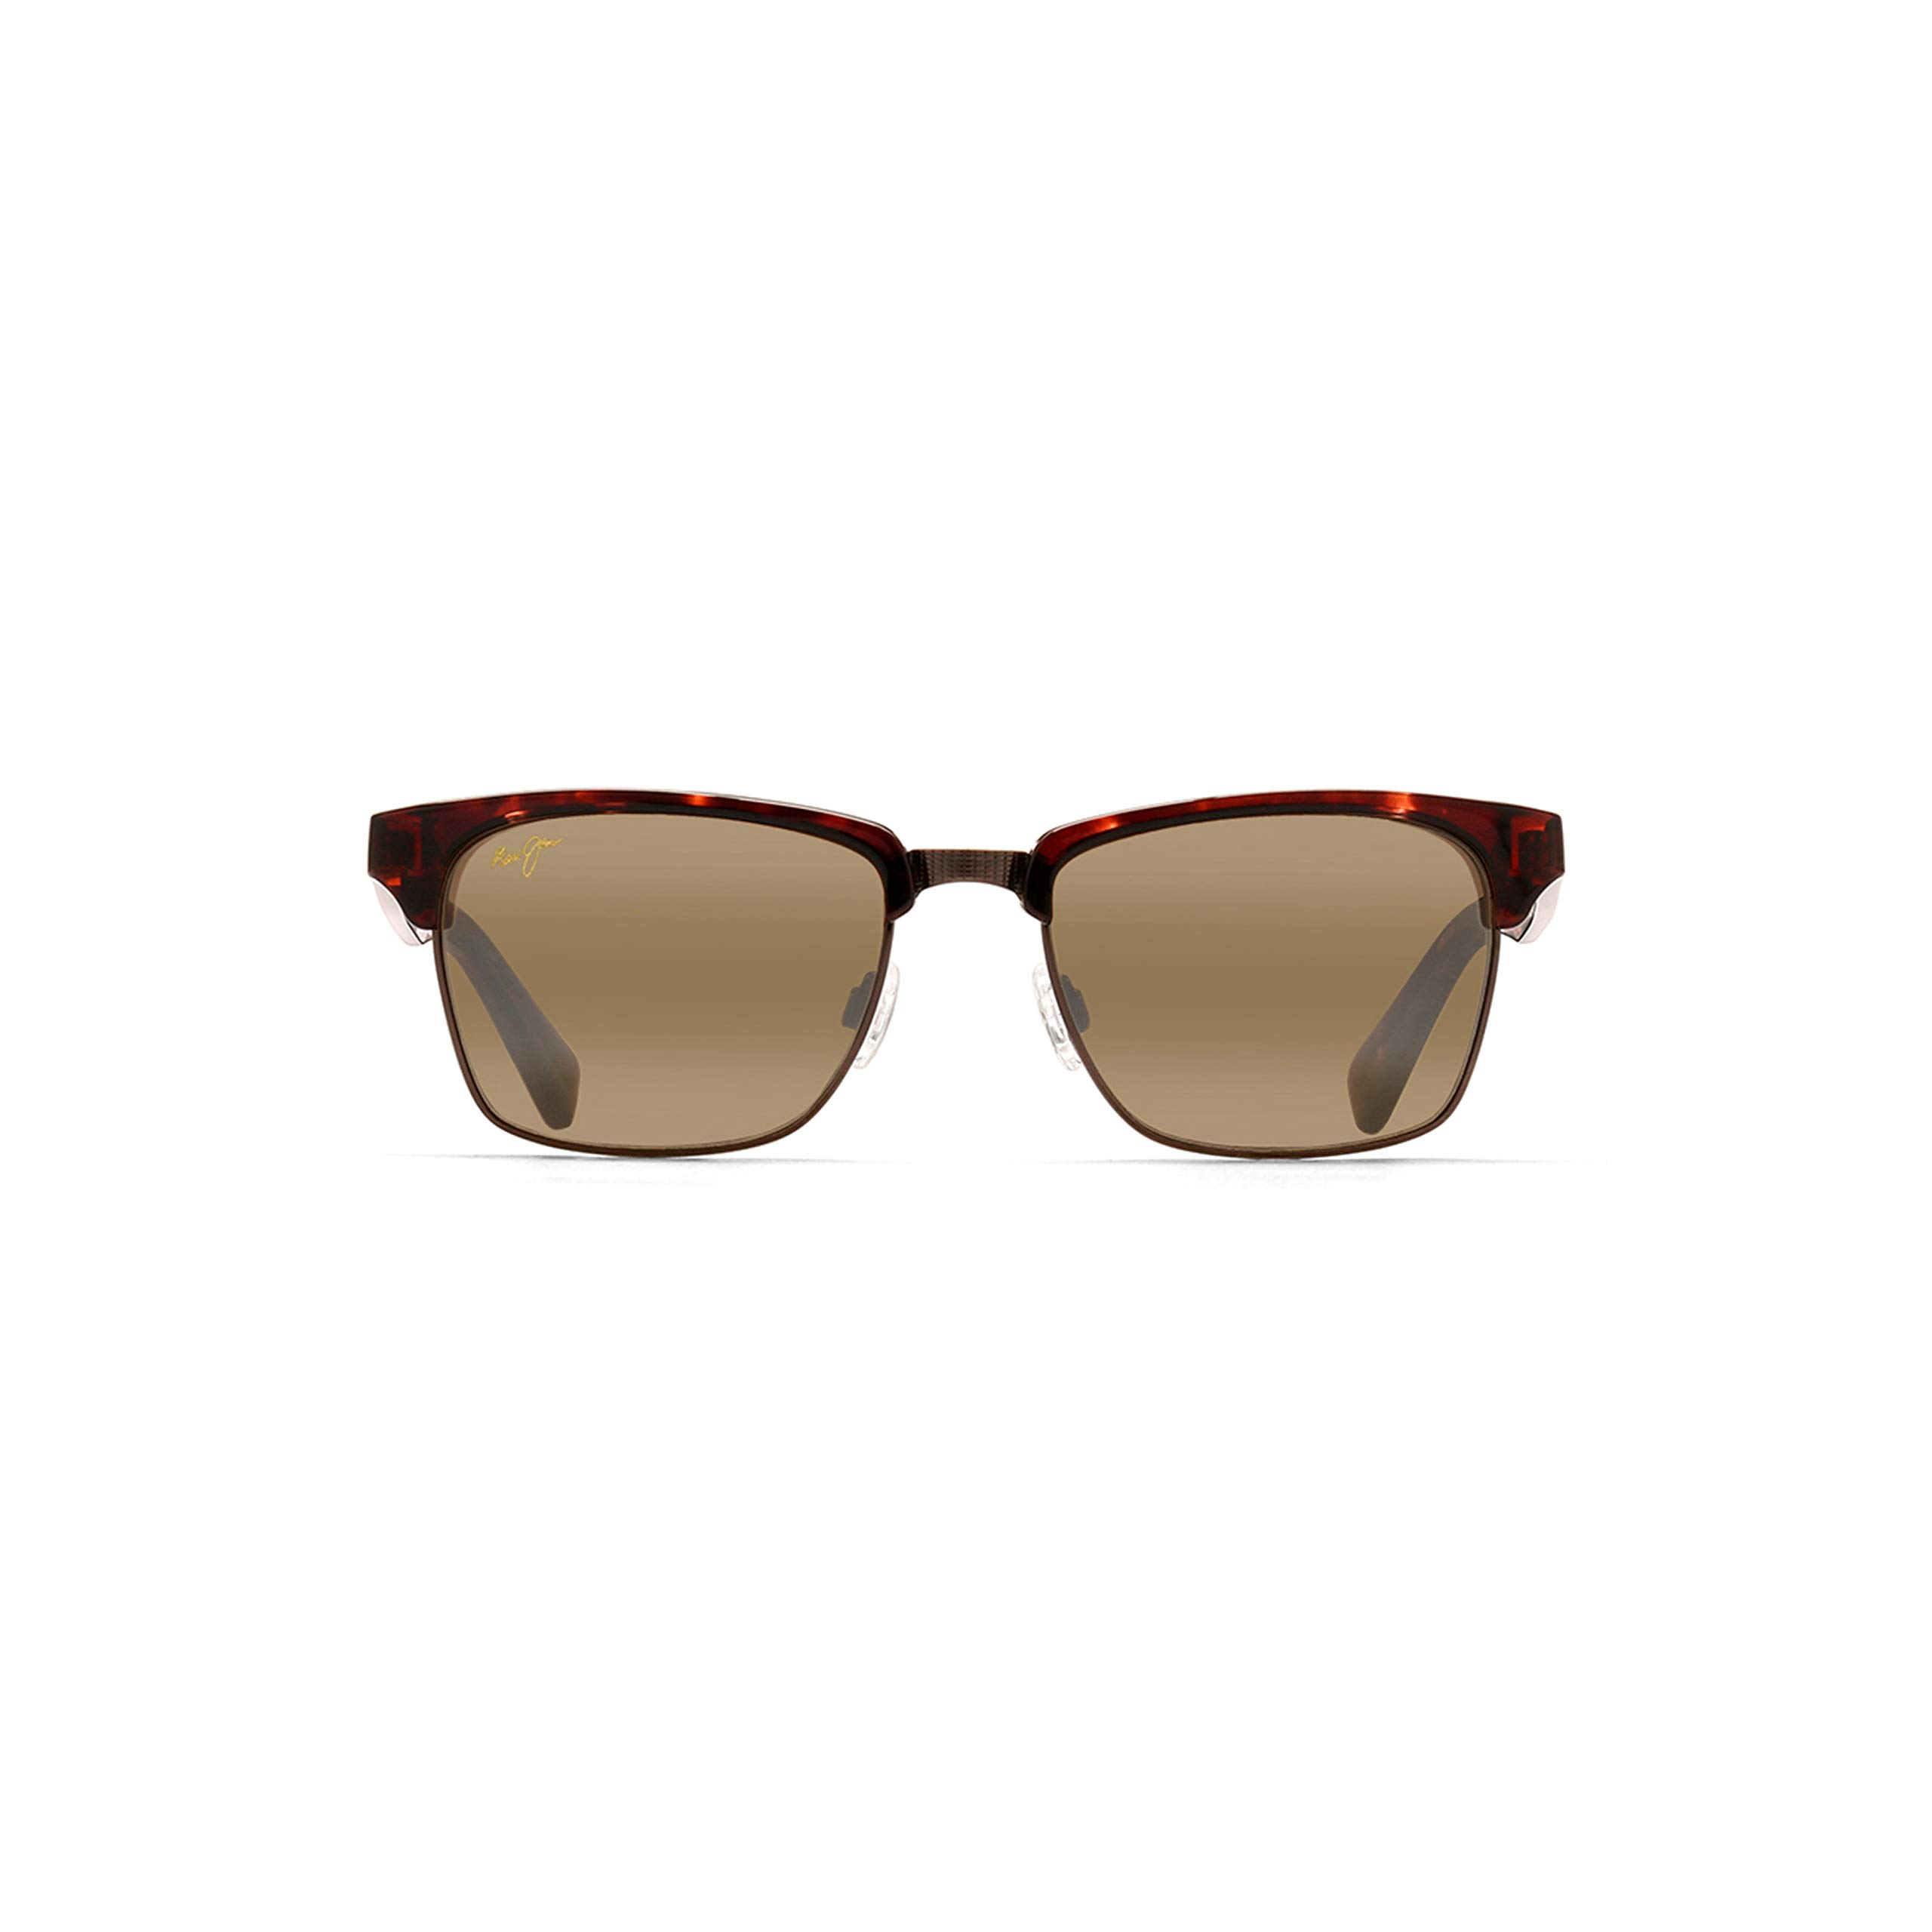 Maui Jim Kawika H257-16C | Sunglasses, Tortoise, with with Patented PolarizedPlus2 Lens Technology by Maui Jim